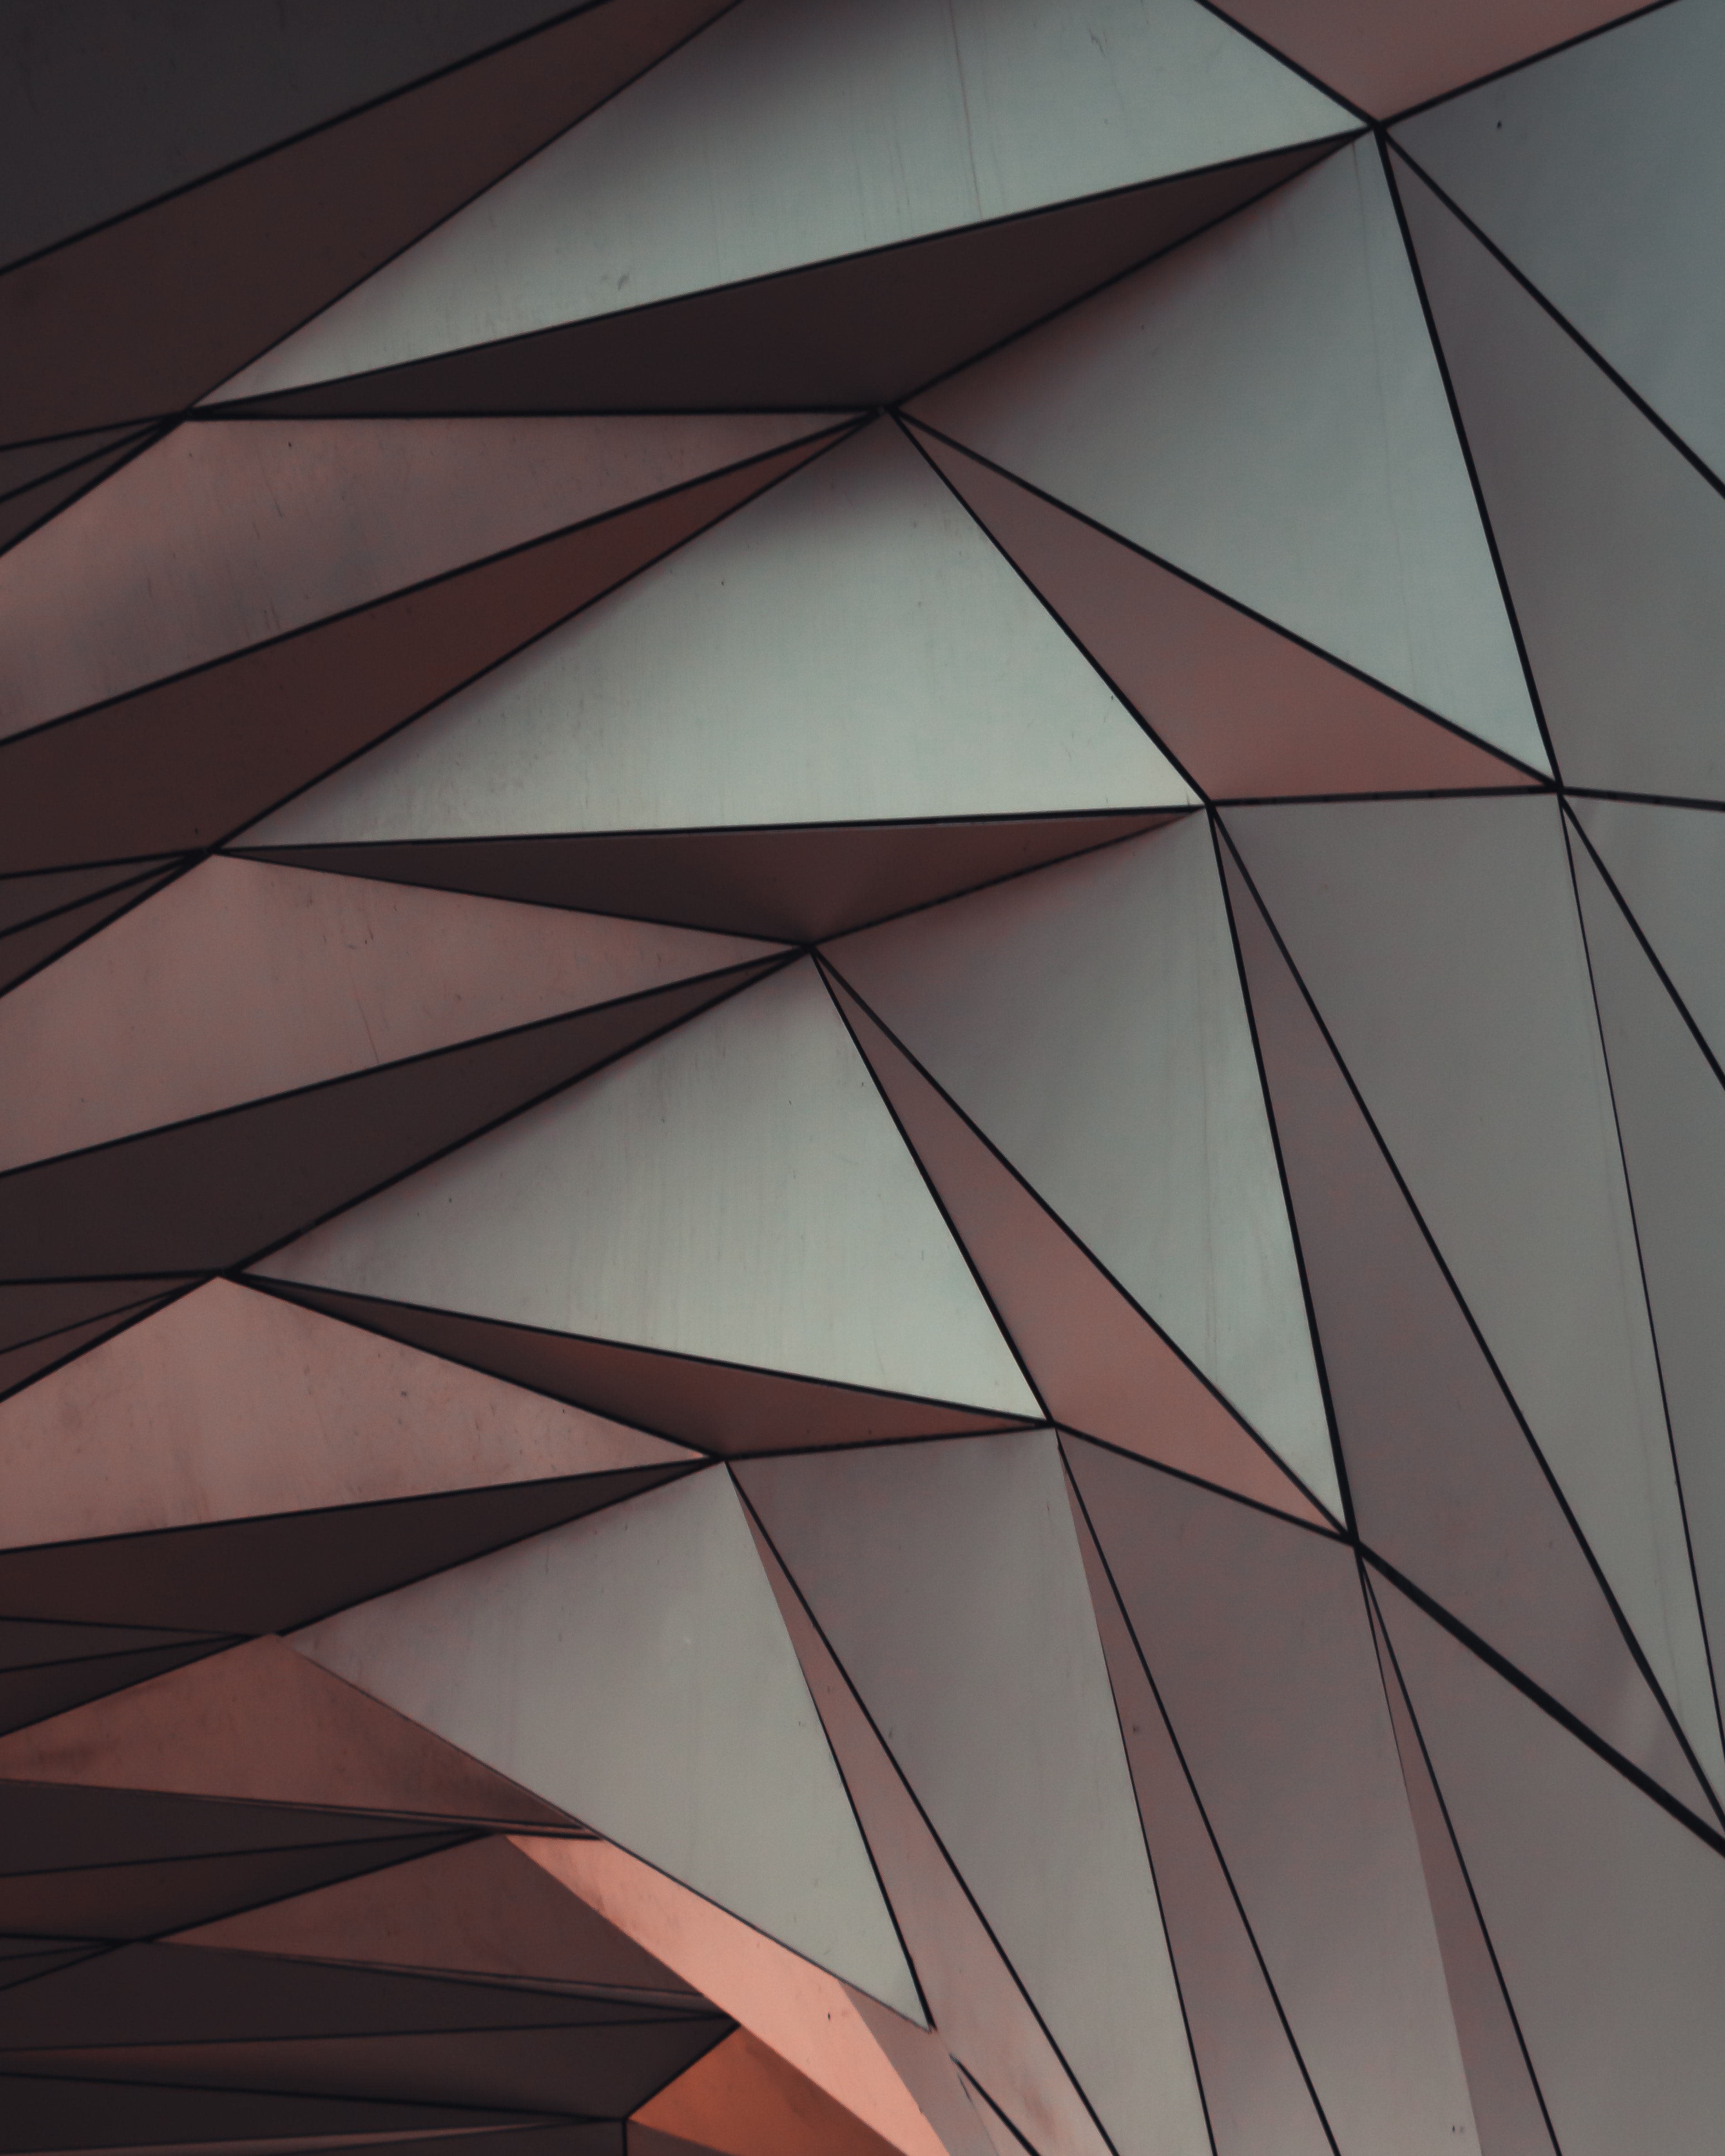 147899 download wallpaper Abstract, Triangles, Fragments, Shapes, Shape screensavers and pictures for free